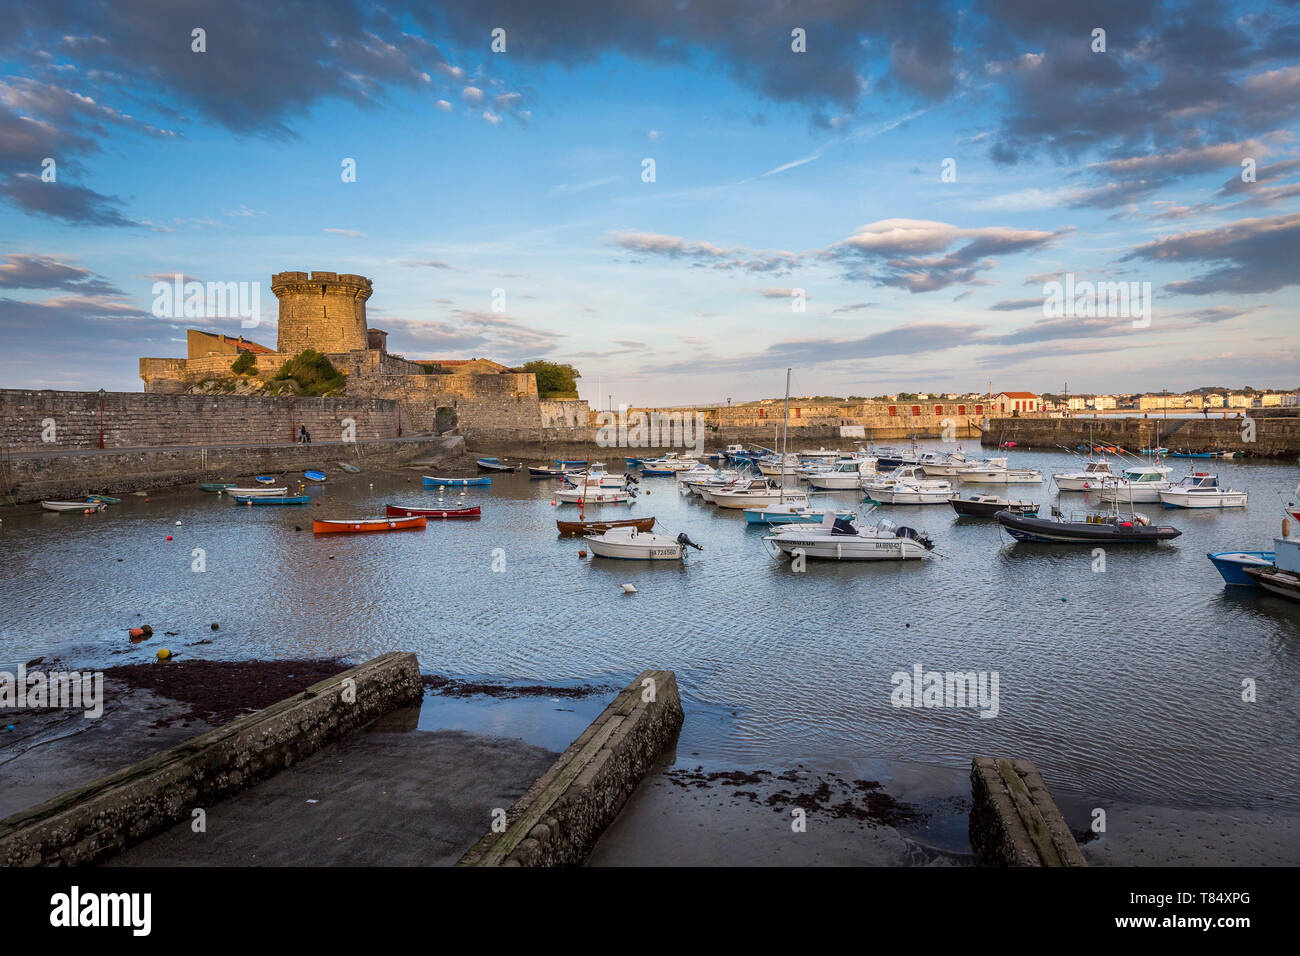 Socoa Fort in Ciboure, along the coast of the Basque Country. - Stock Image